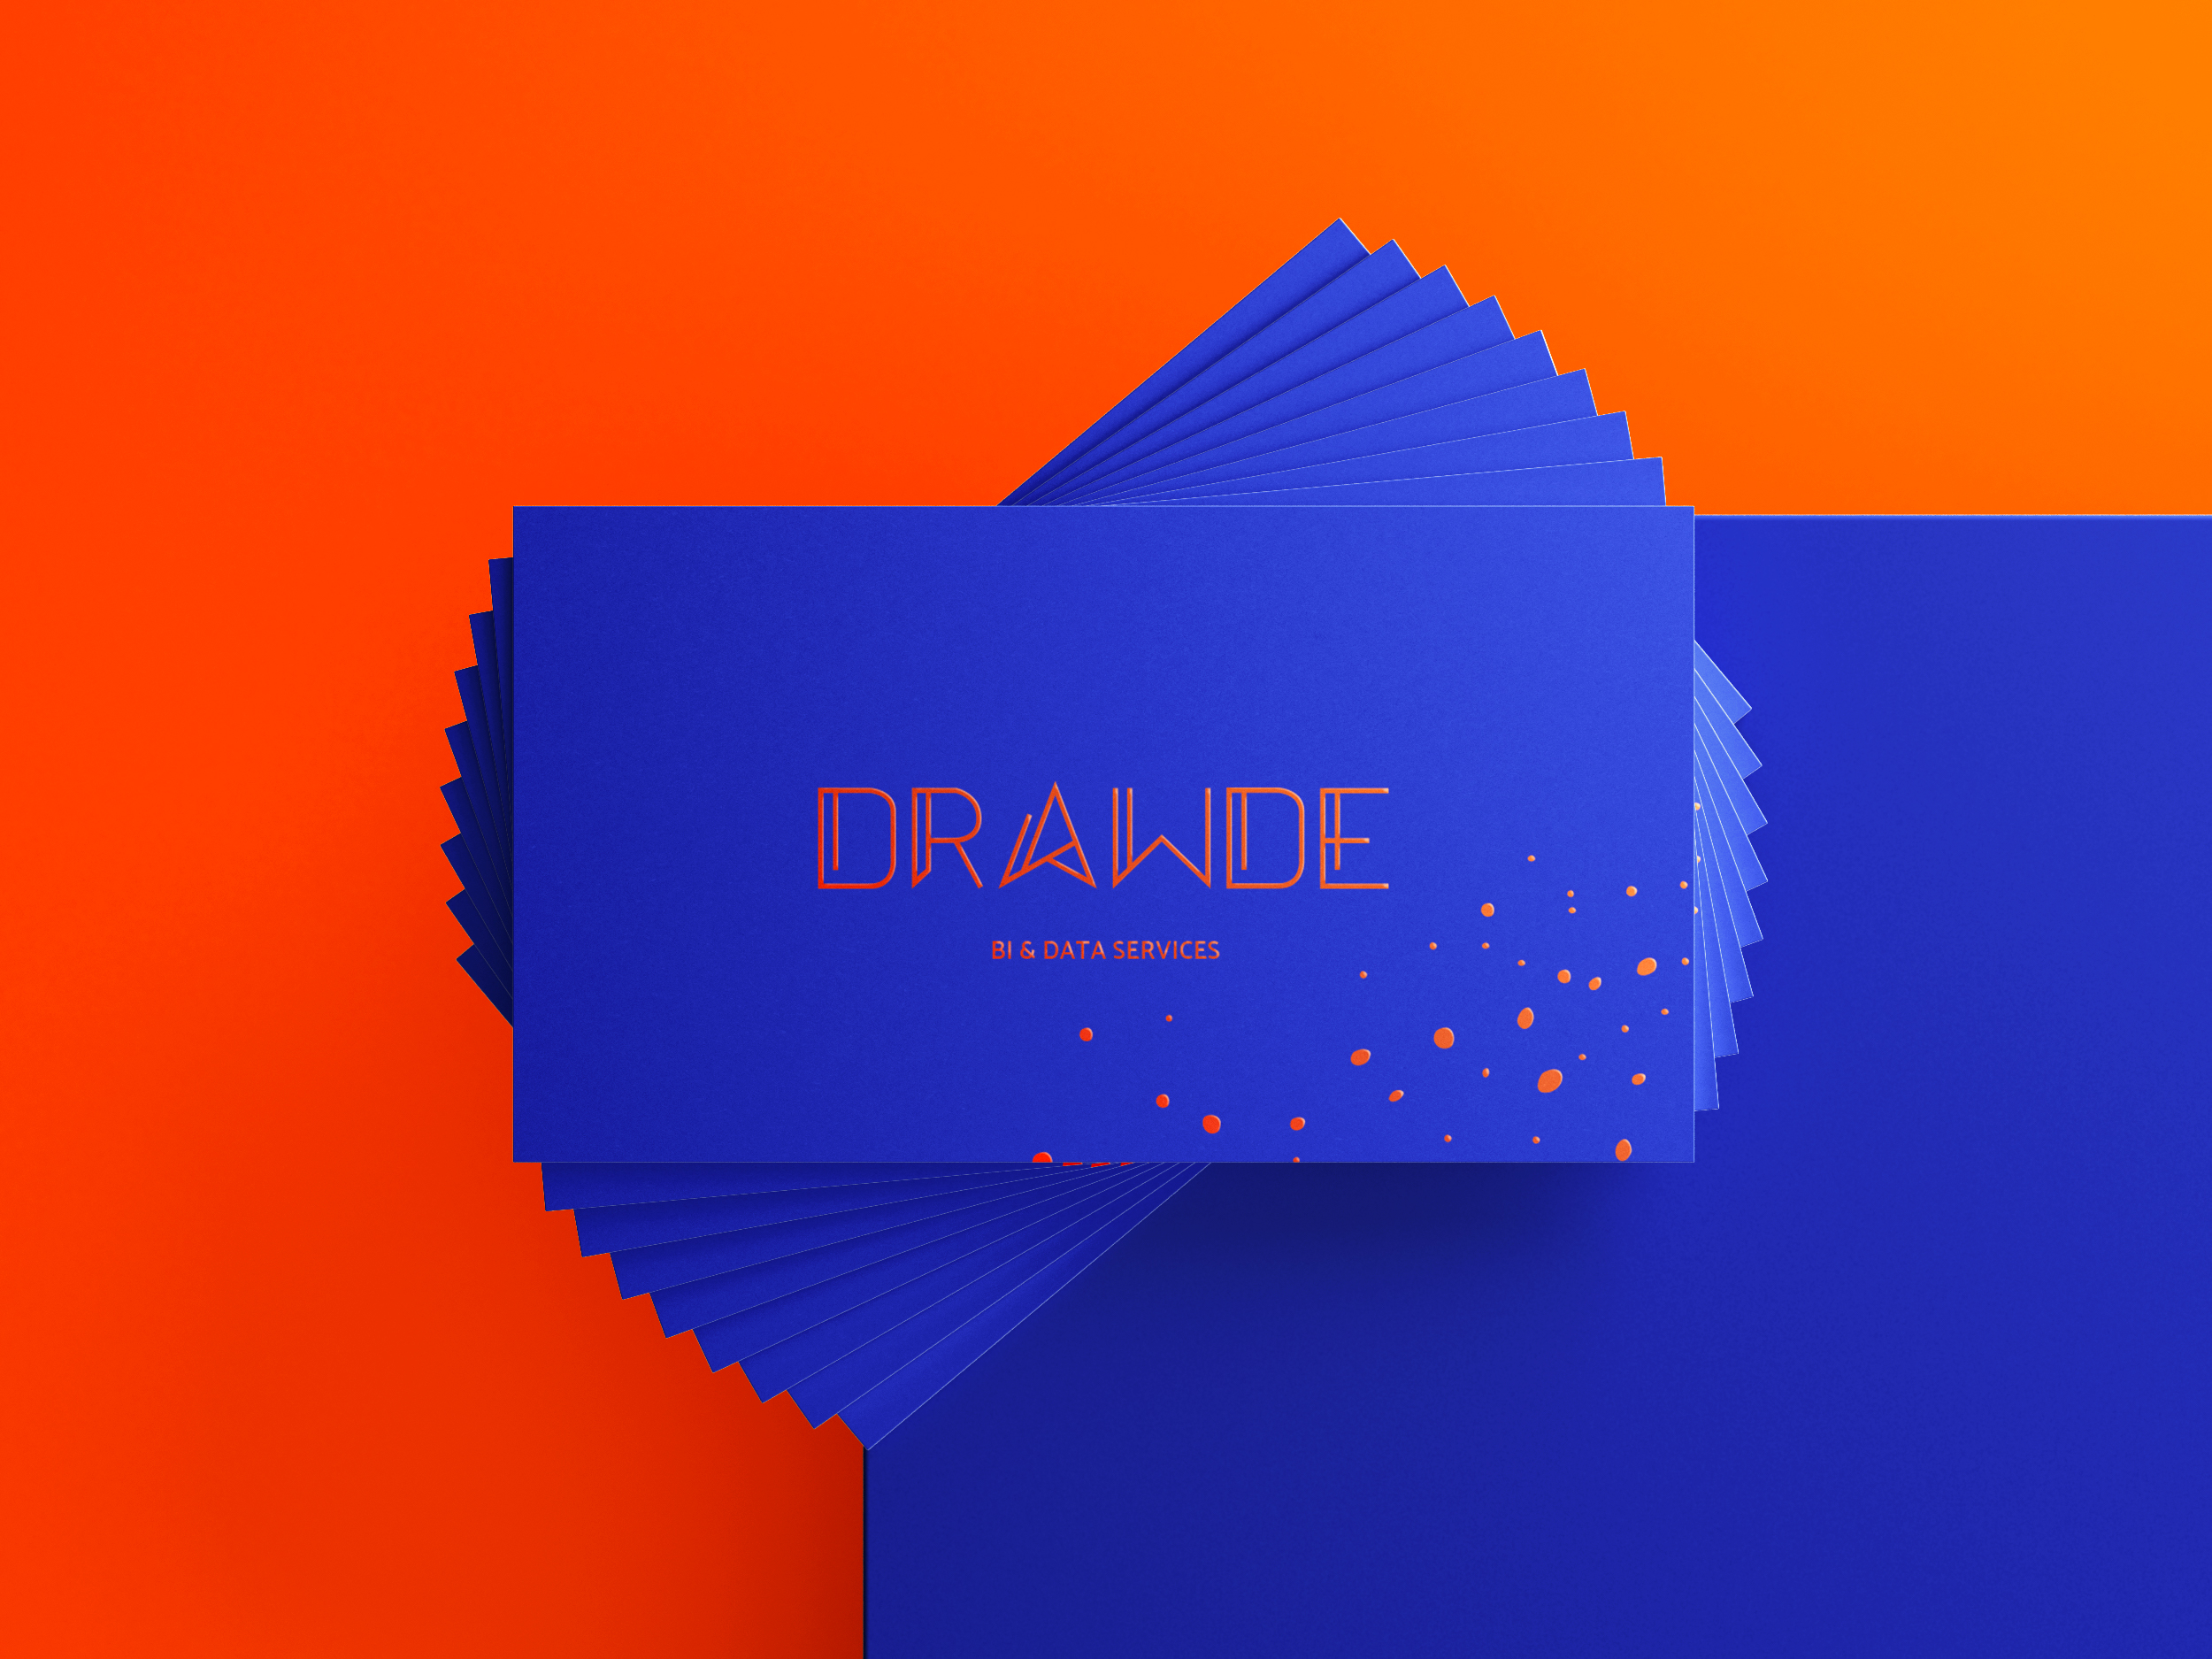 Blue Drawde business cards, front view.